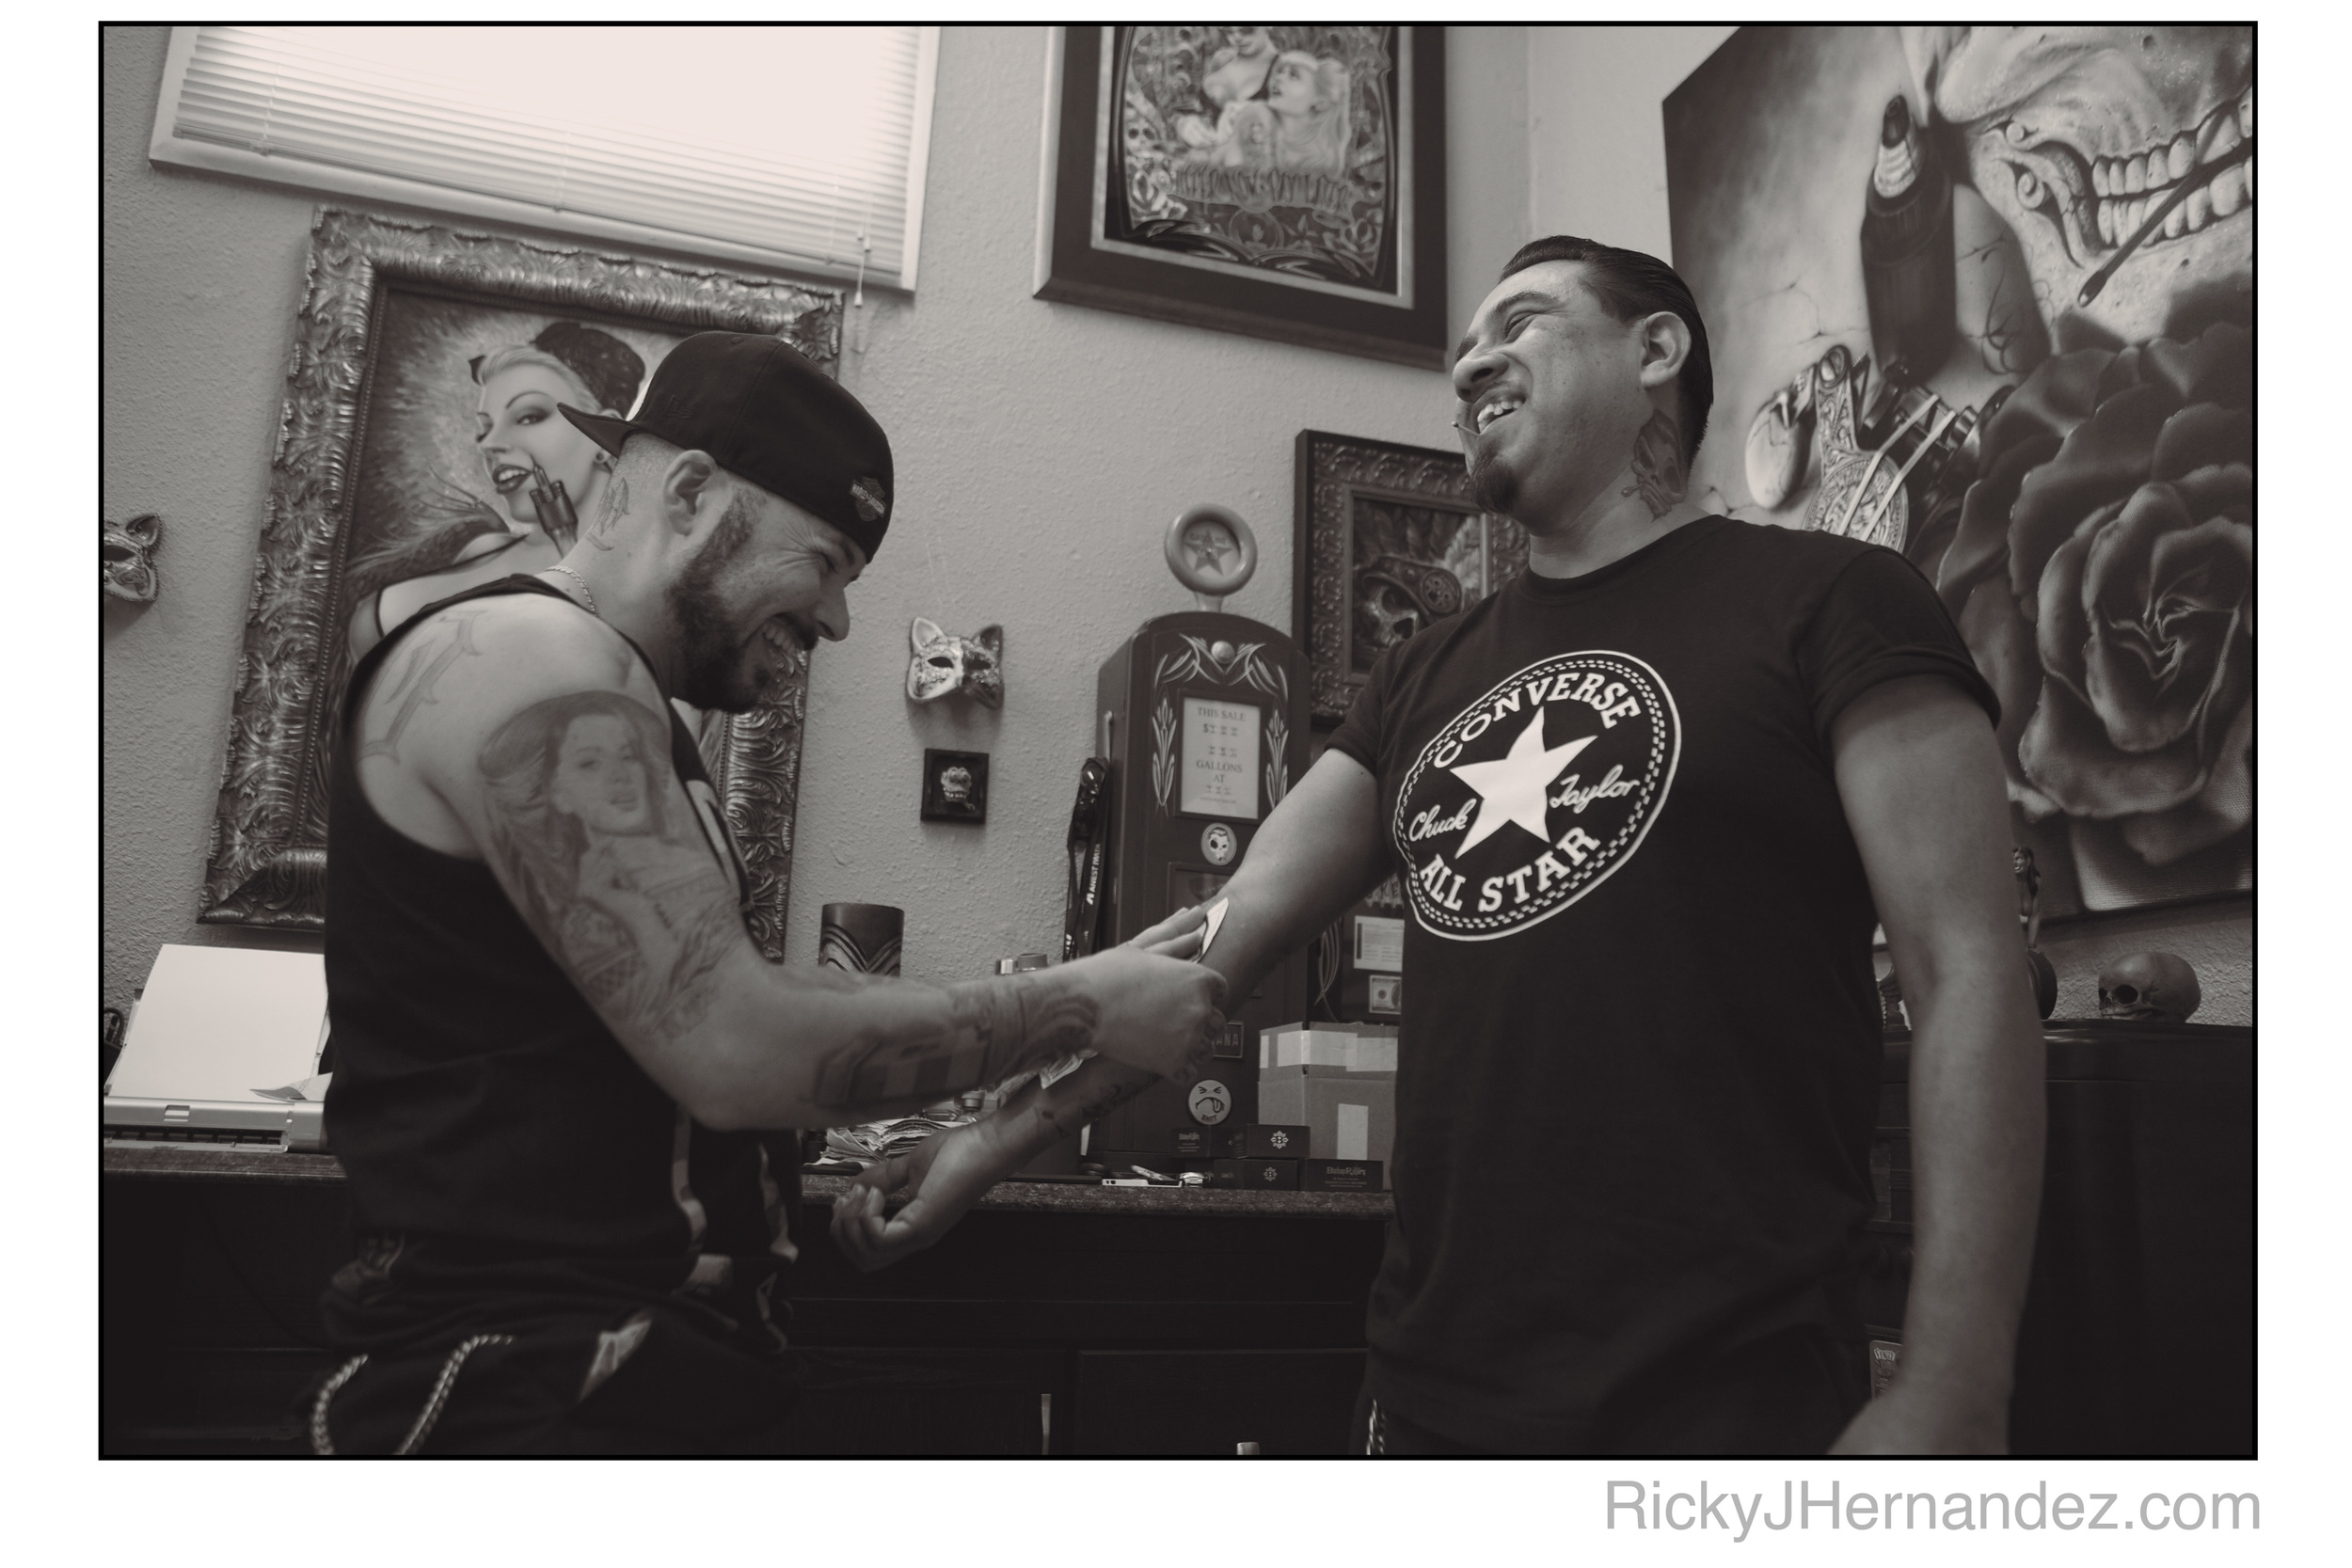 Ricky-J-Hernandez-Portrait-of-Italian-tattoo-artist-Macko-and-Fo